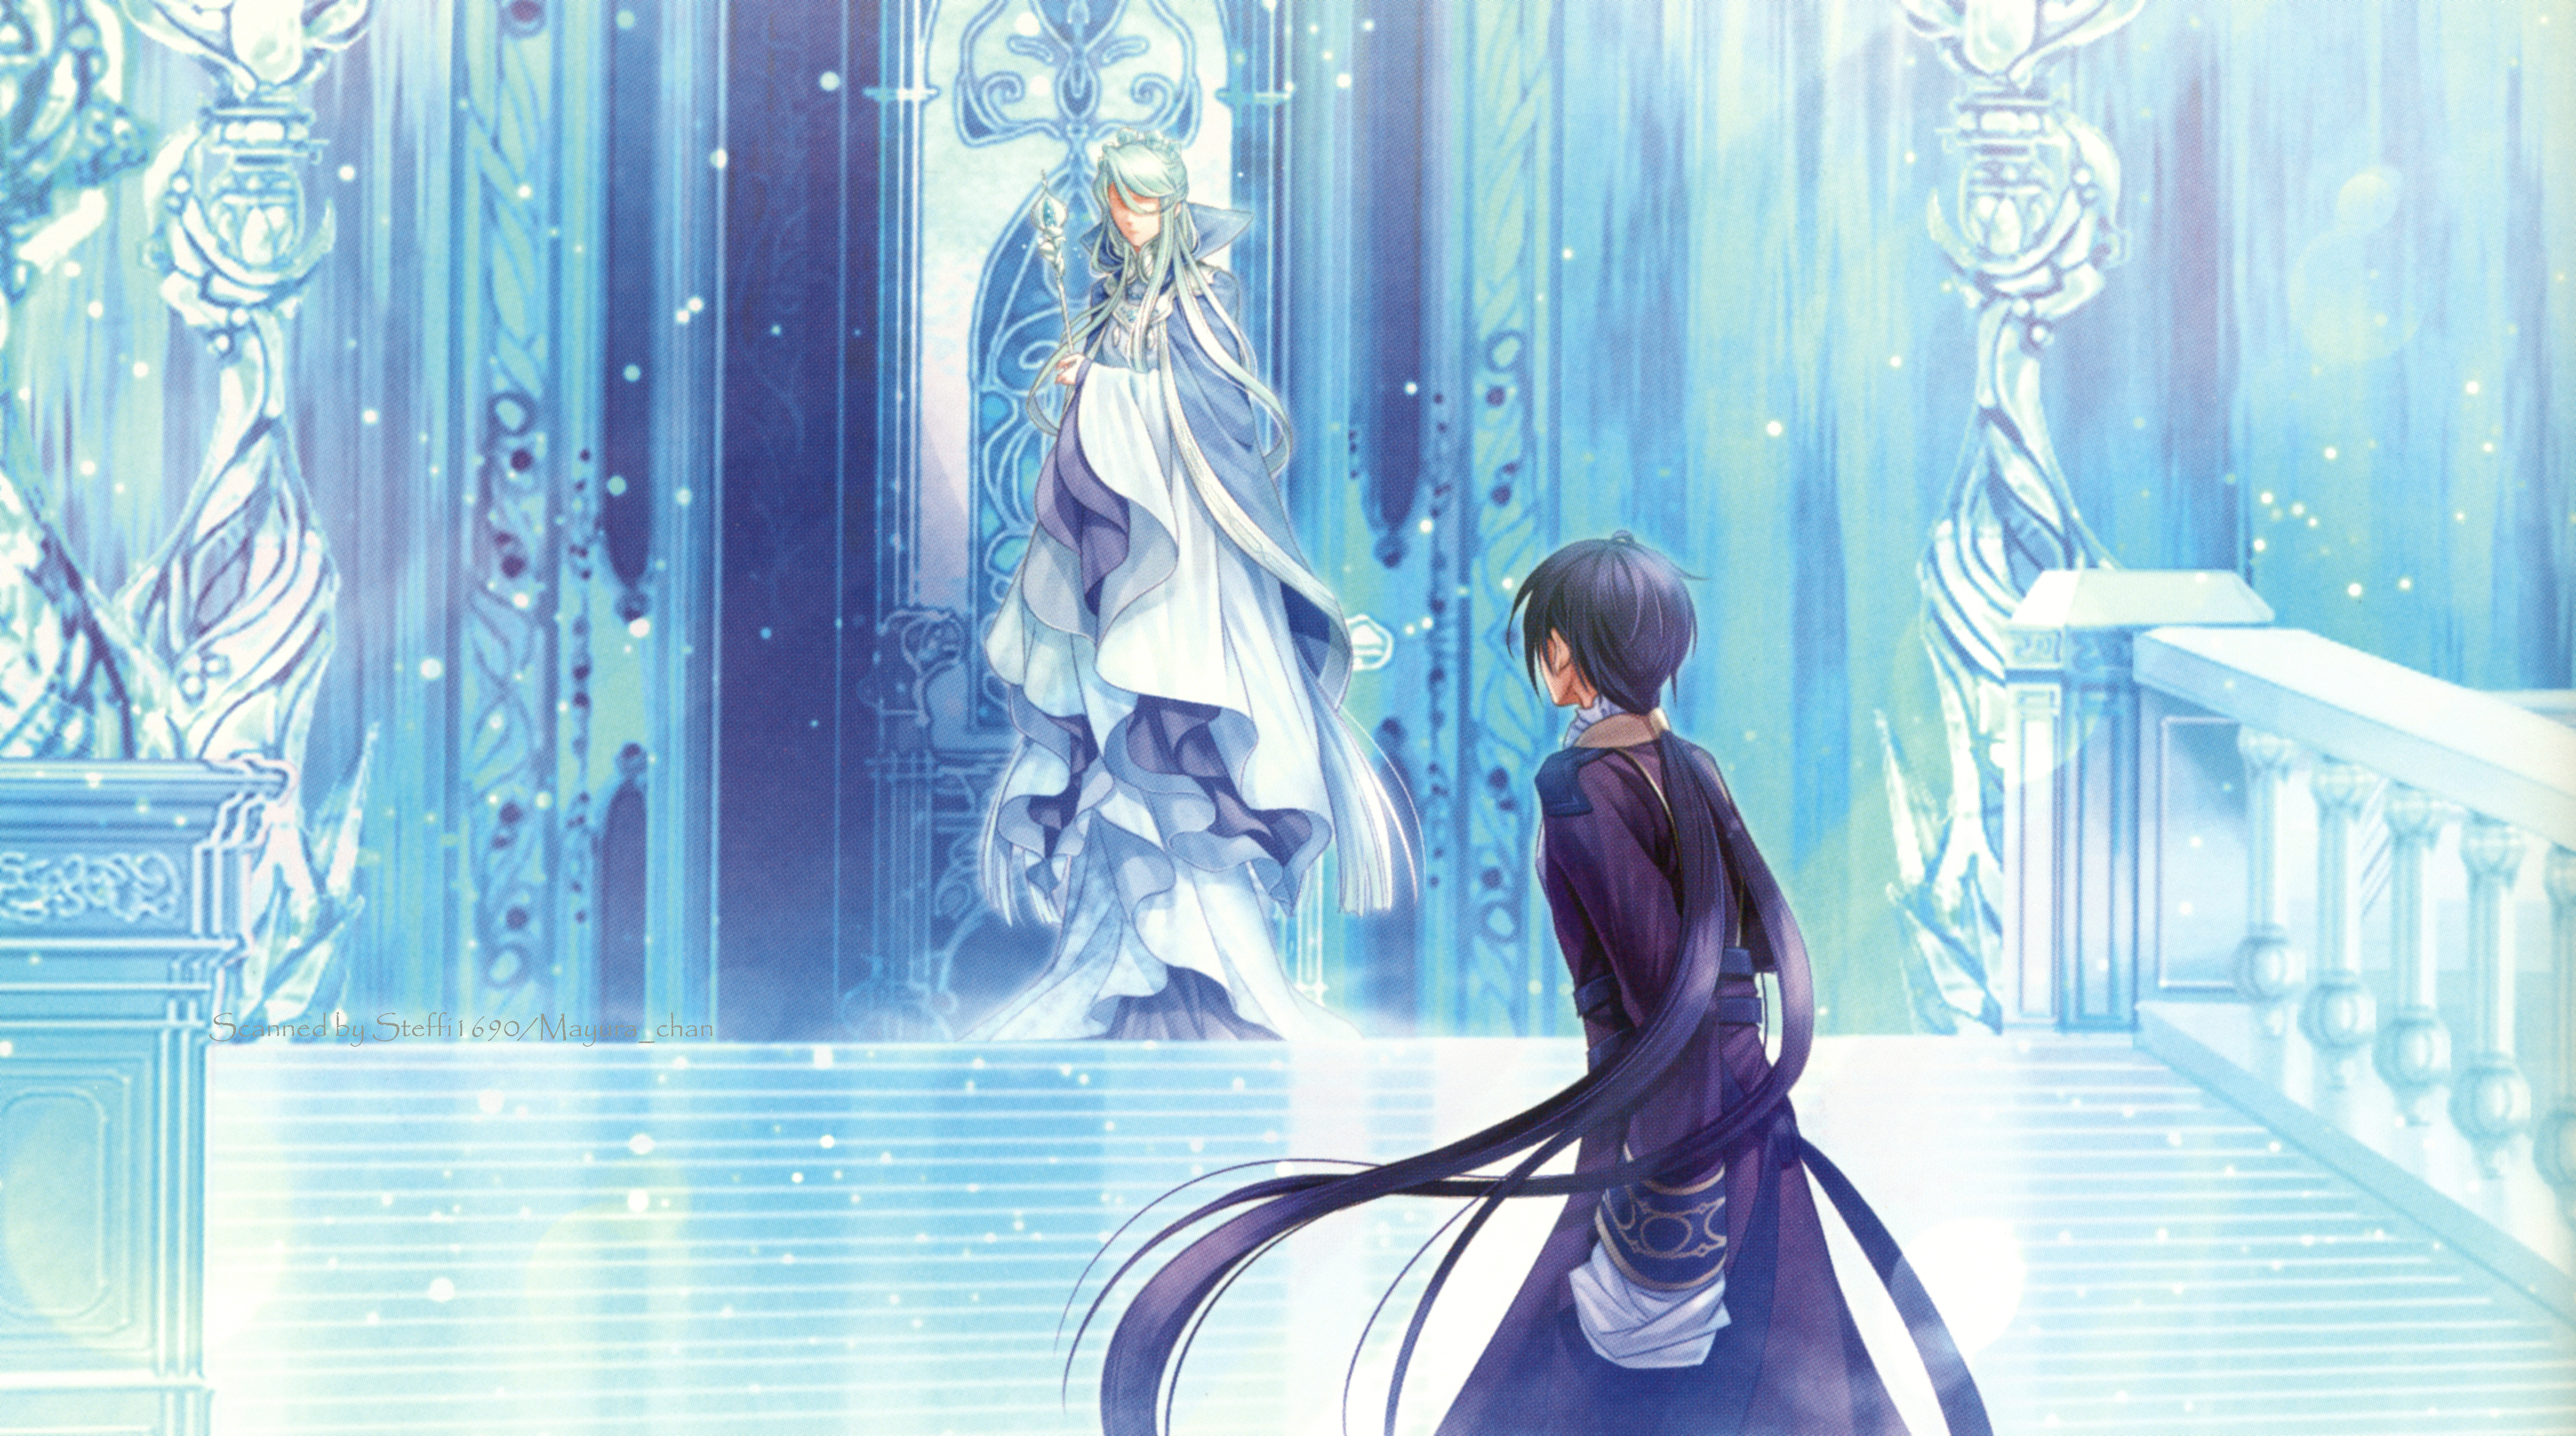 8b16af54231e SNOW BOUND LAND Wallpaper  1960641 - Zerochan Anime Image Board